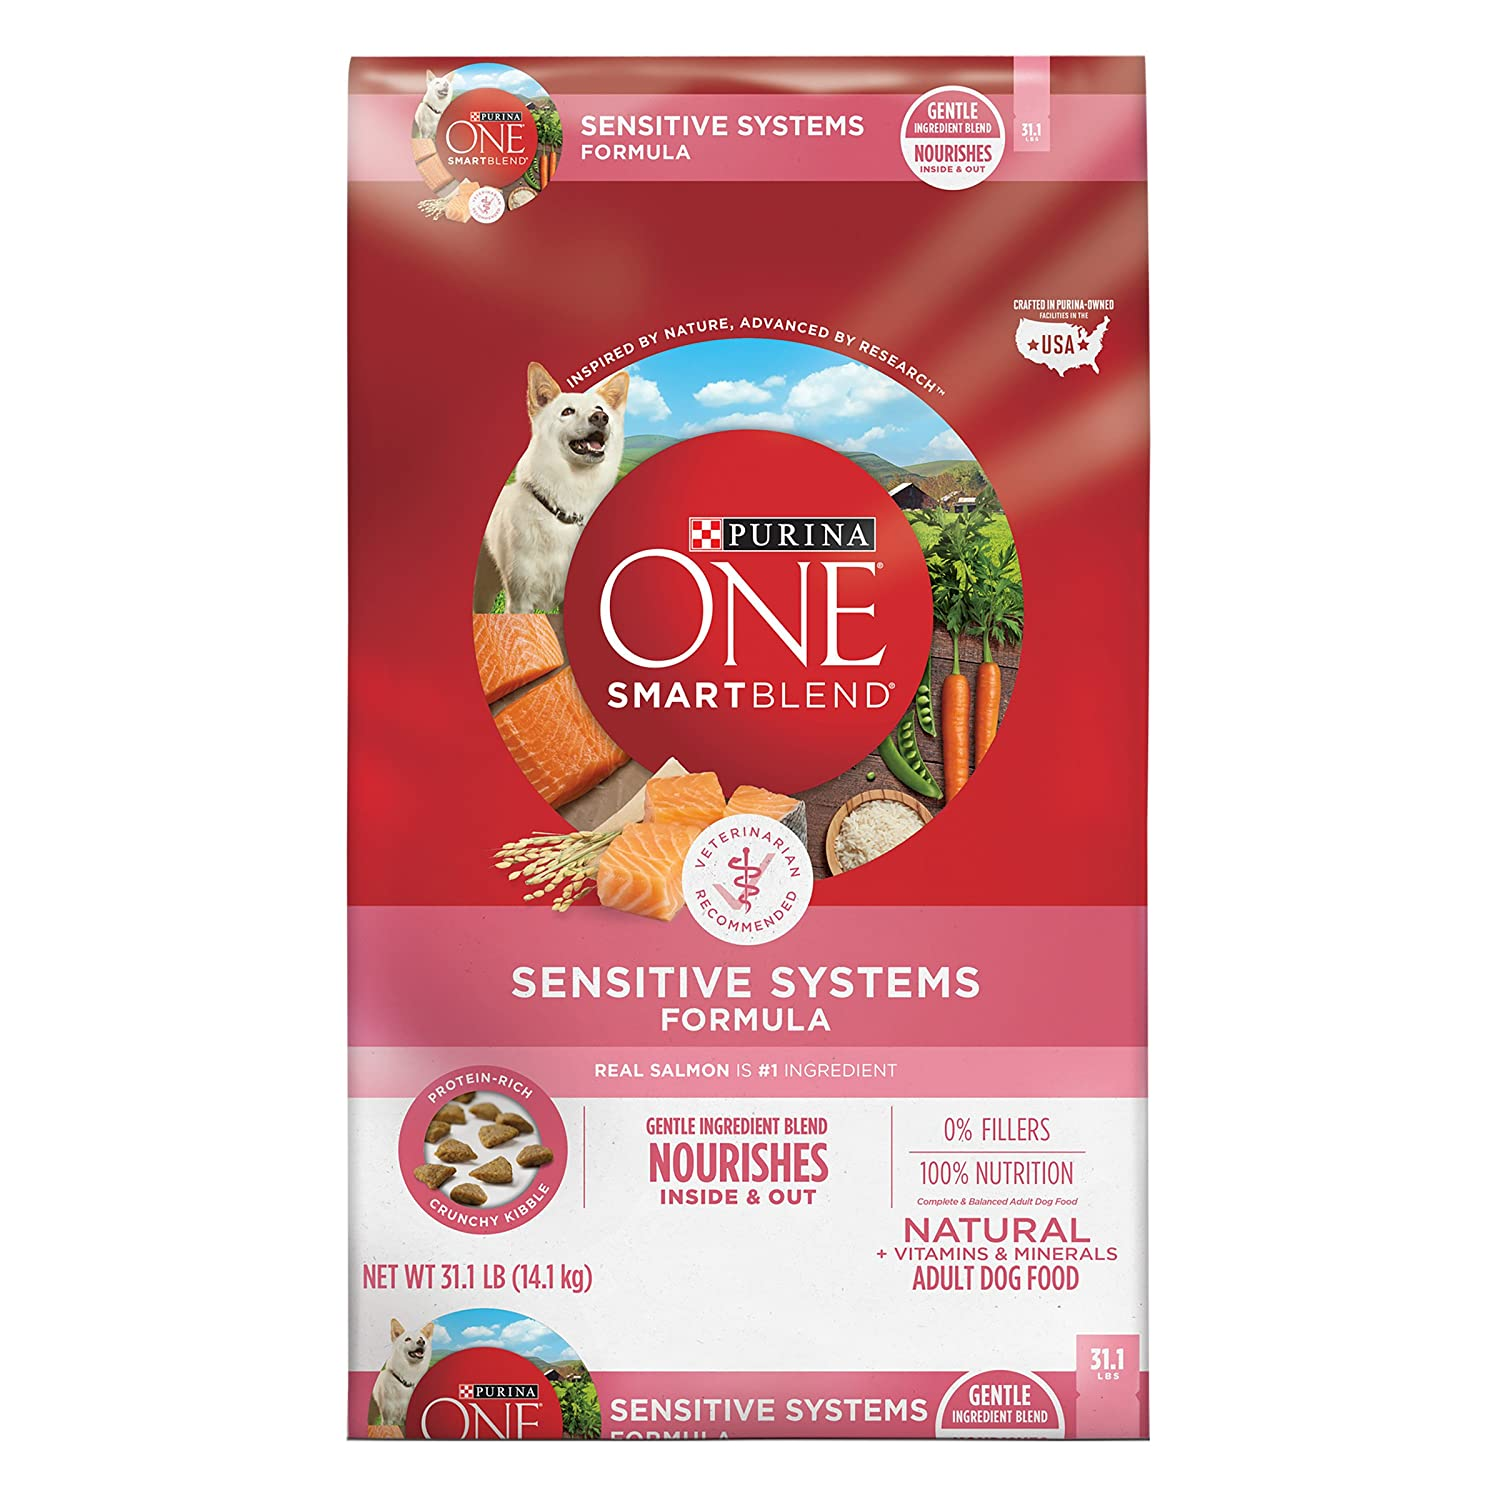 4.Purina ONE SmartBlend Sensitive Systems Adult Formula Dry Dog Food